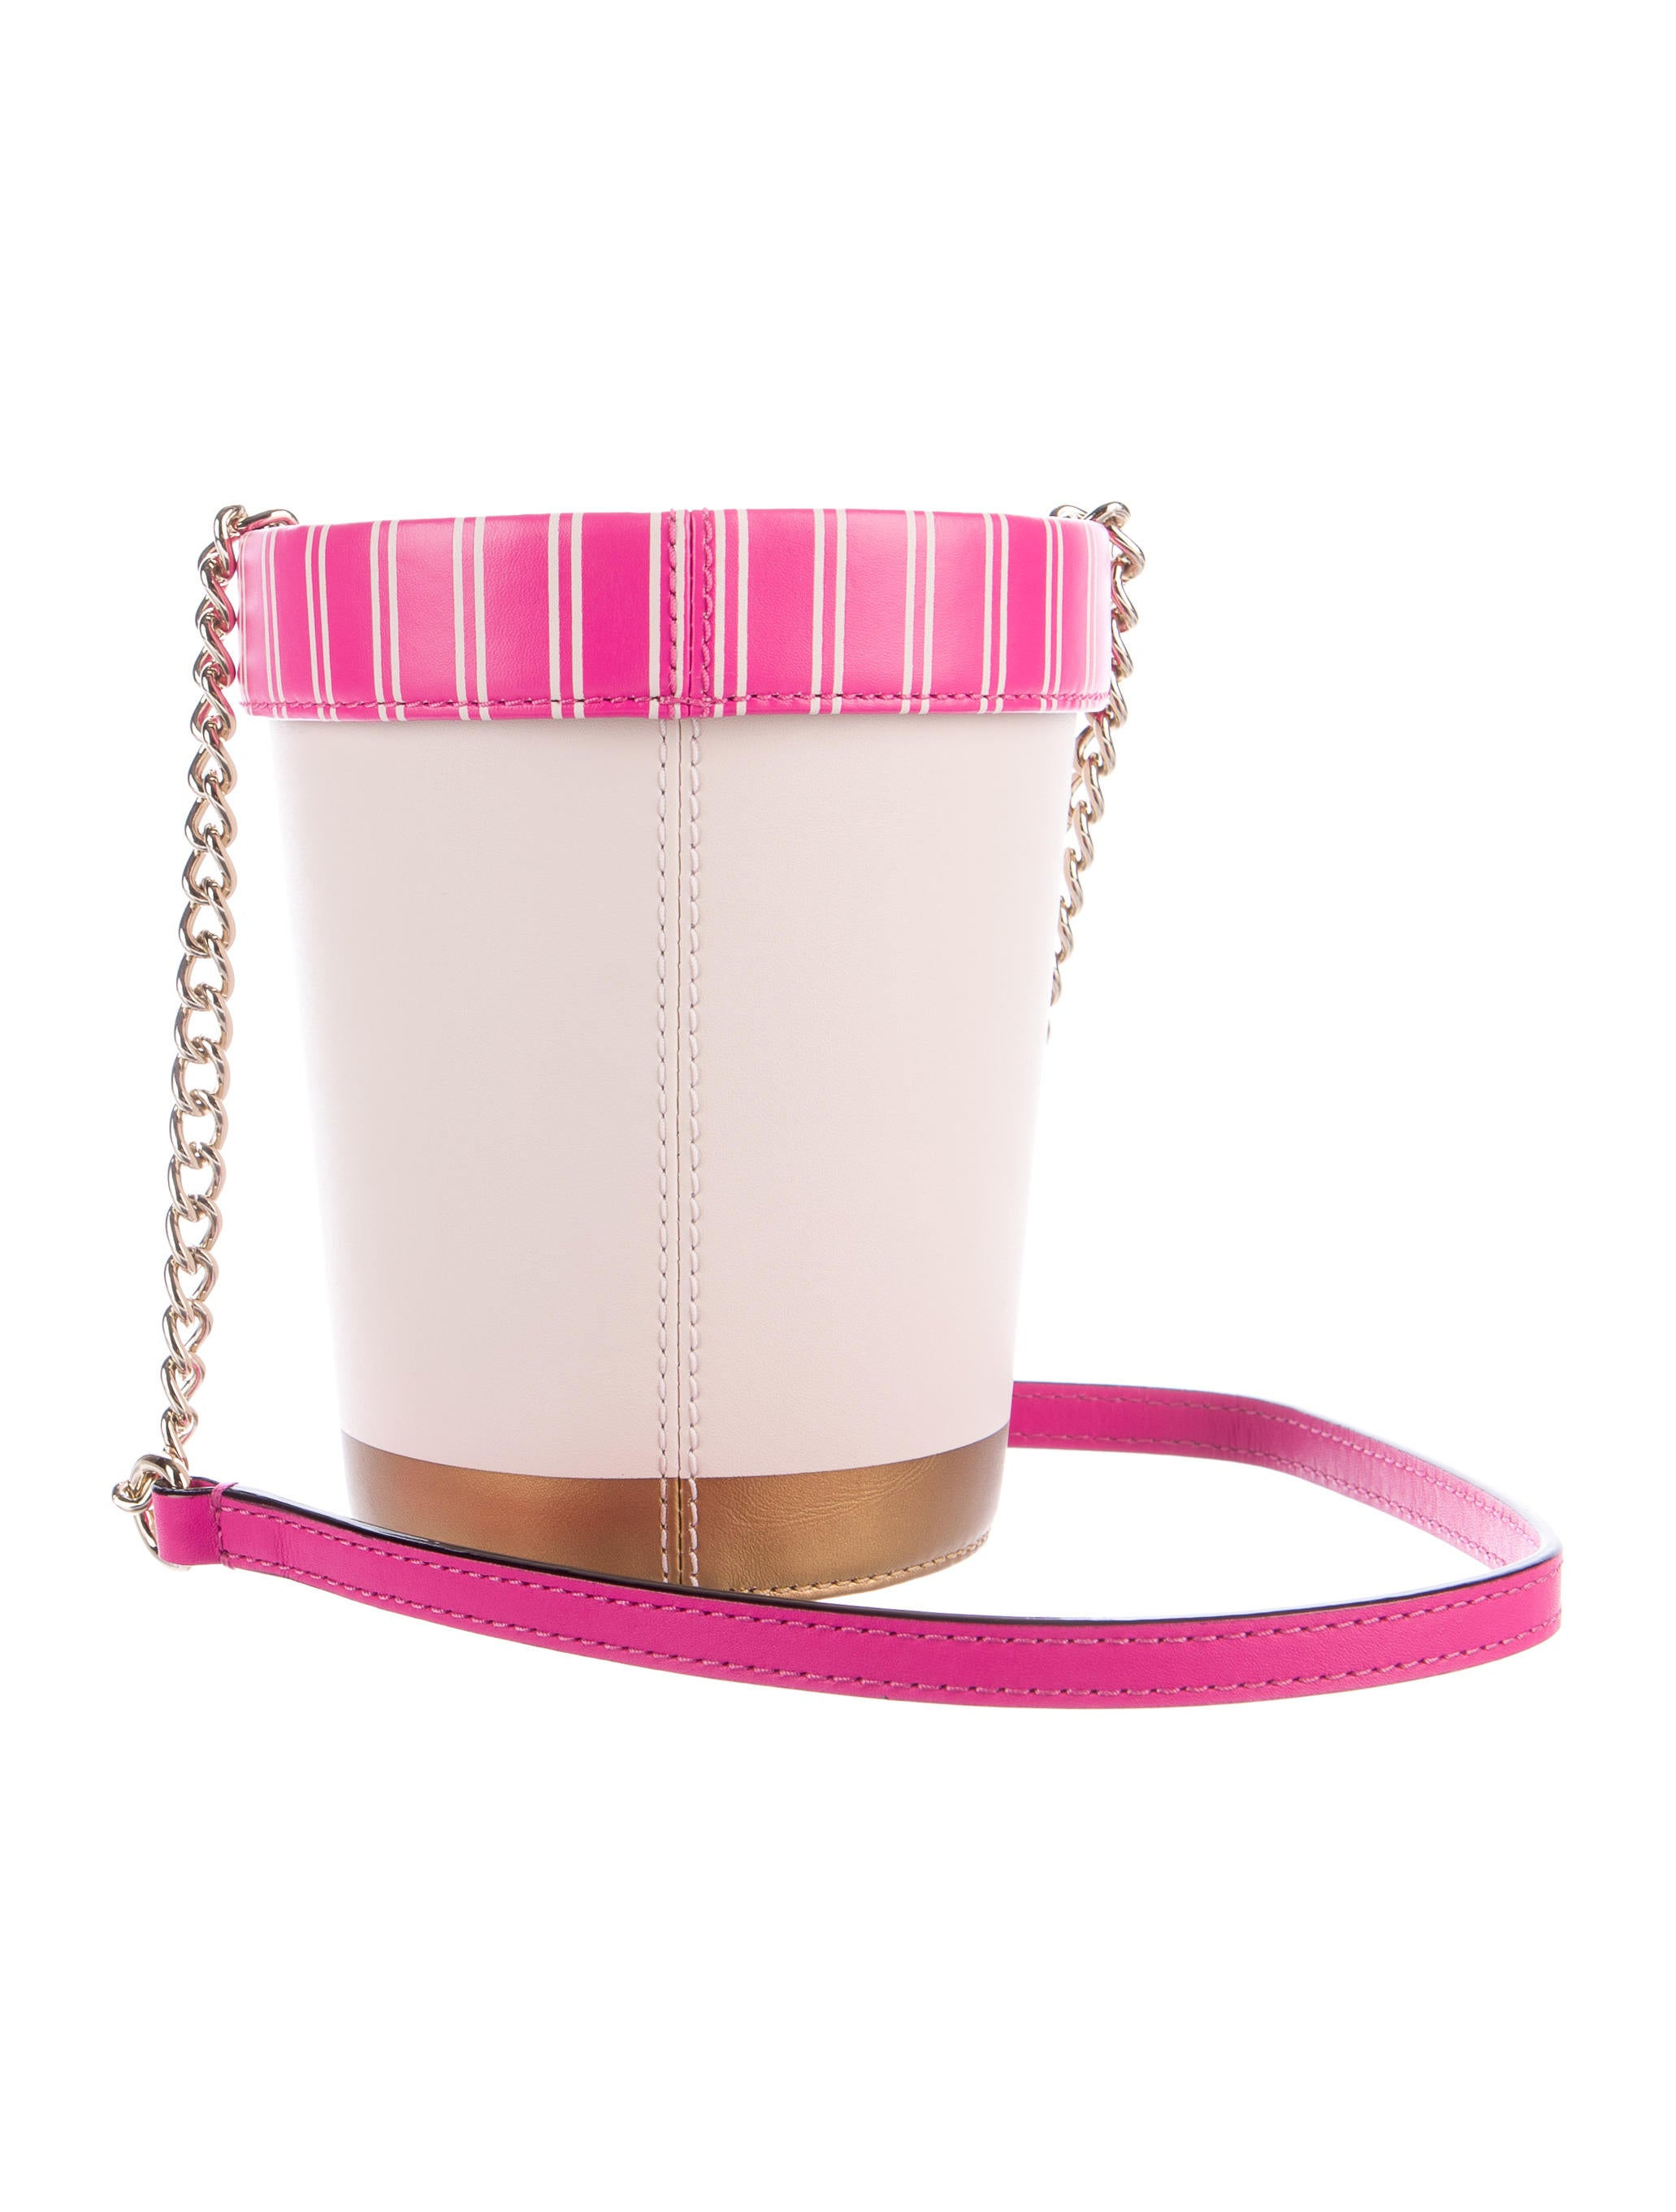 Kate Spade New York Flavor of the Month Crossbody Bag ...